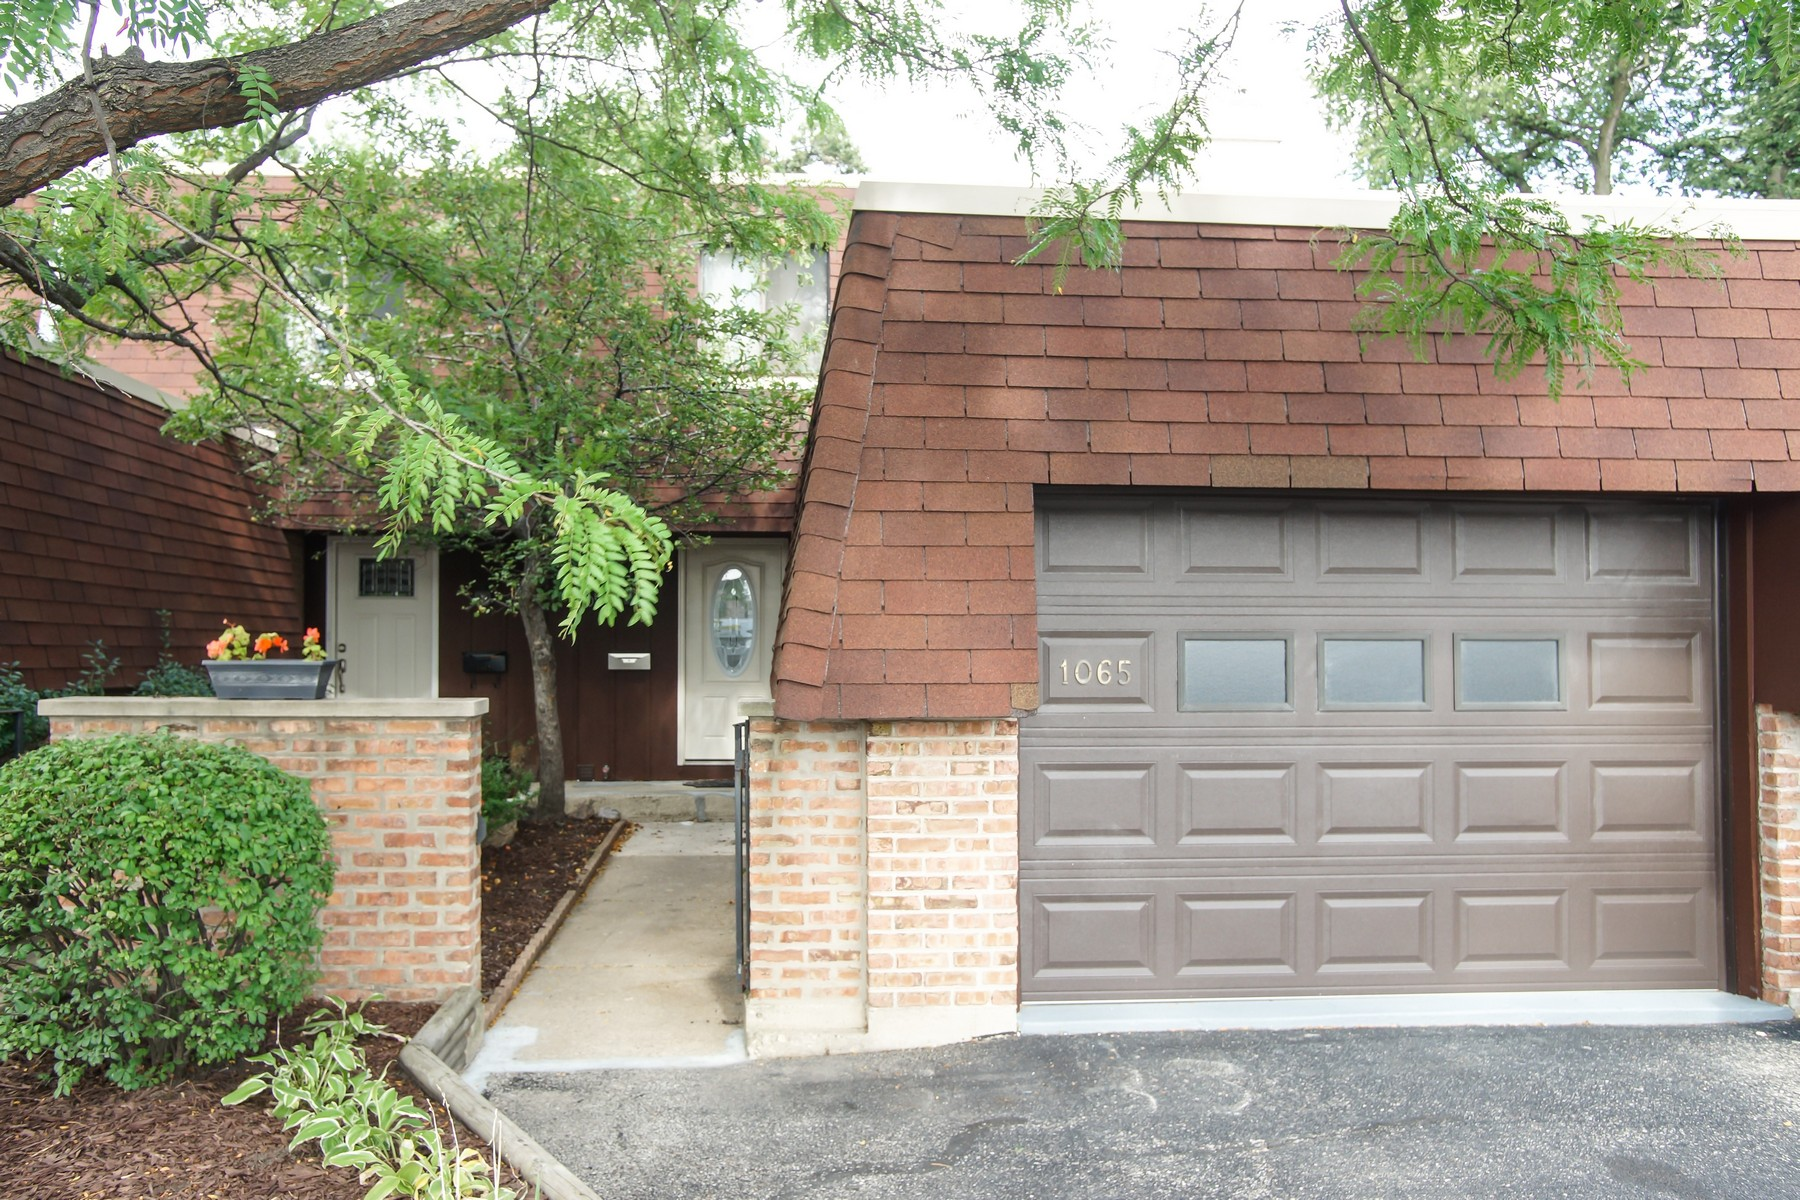 Townhouse for Sale at Meticulous Renovation! 1065 Busse Highway Park Ridge, Illinois, 60068 United States